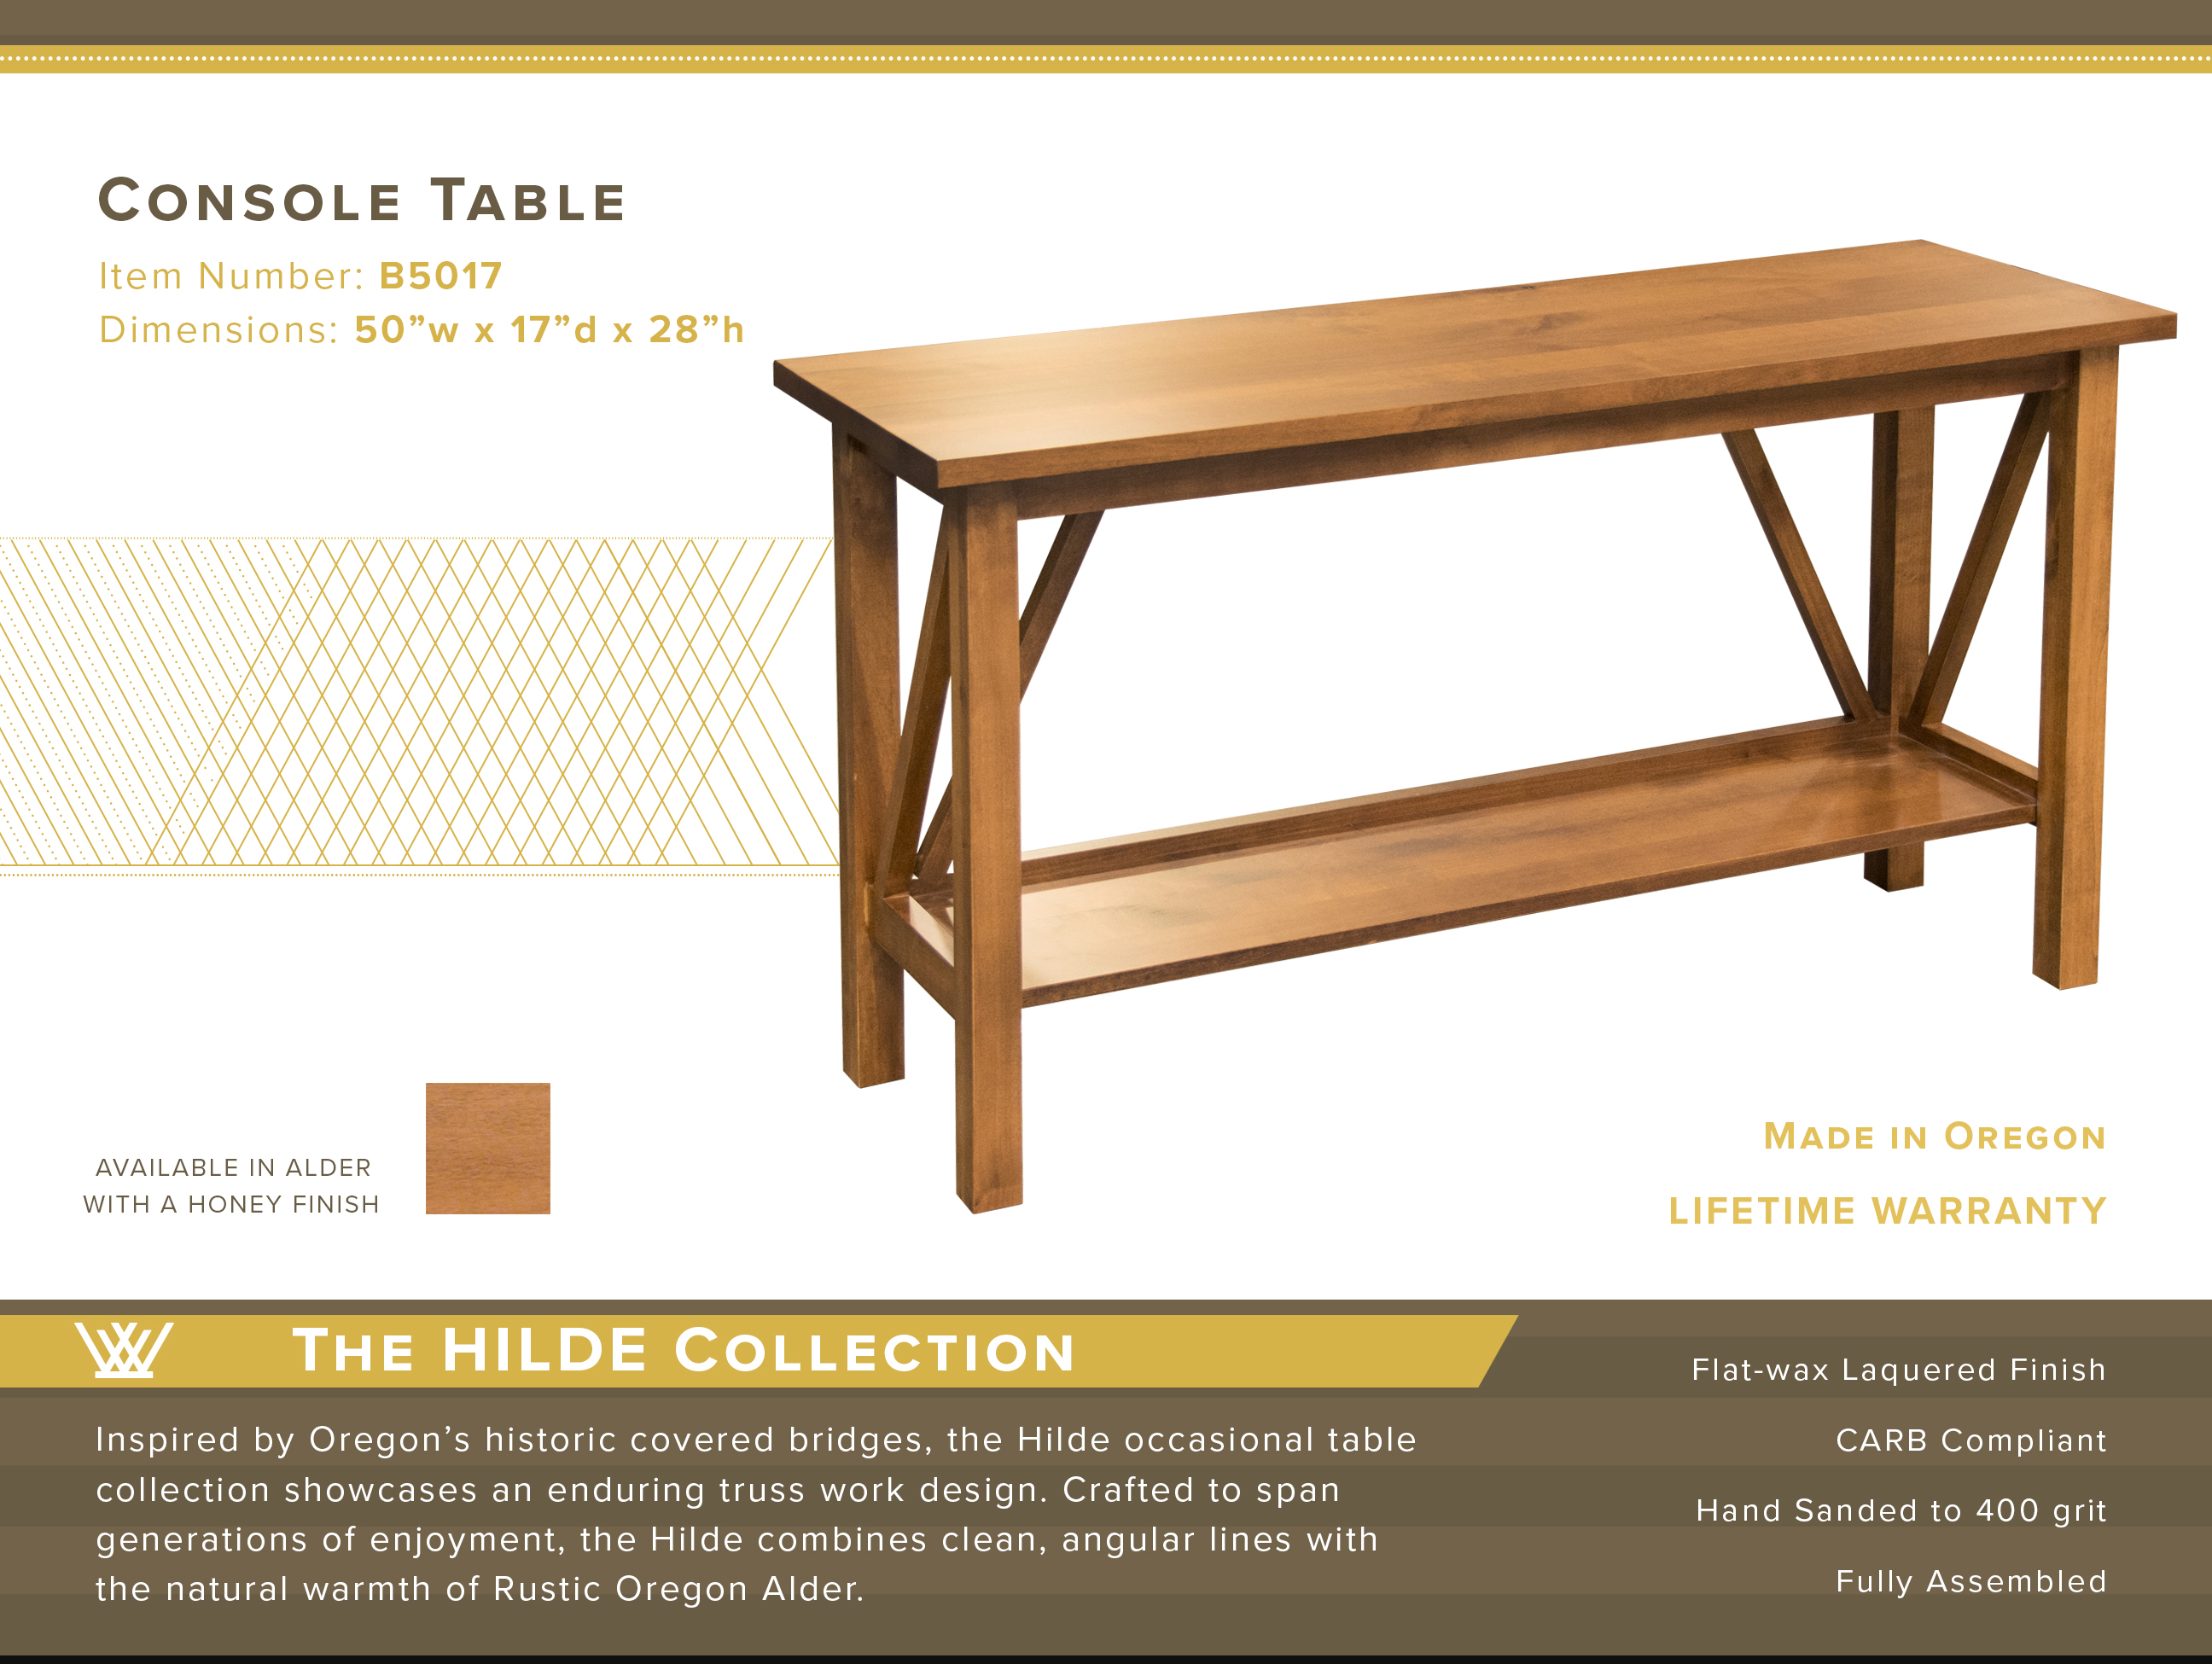 Hilde Console Table #B5017